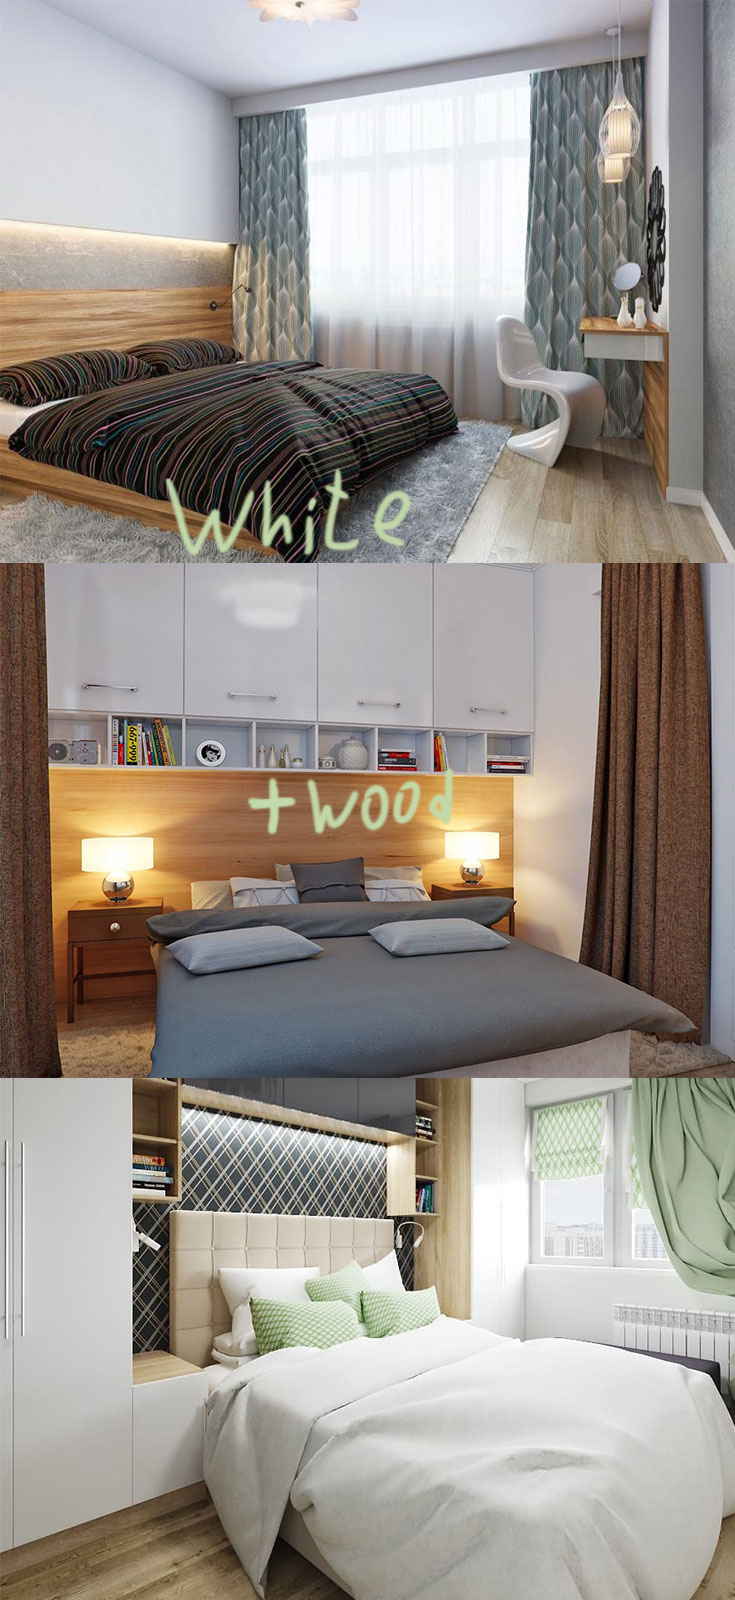 White and wood in small #scandinavian #bedrooms